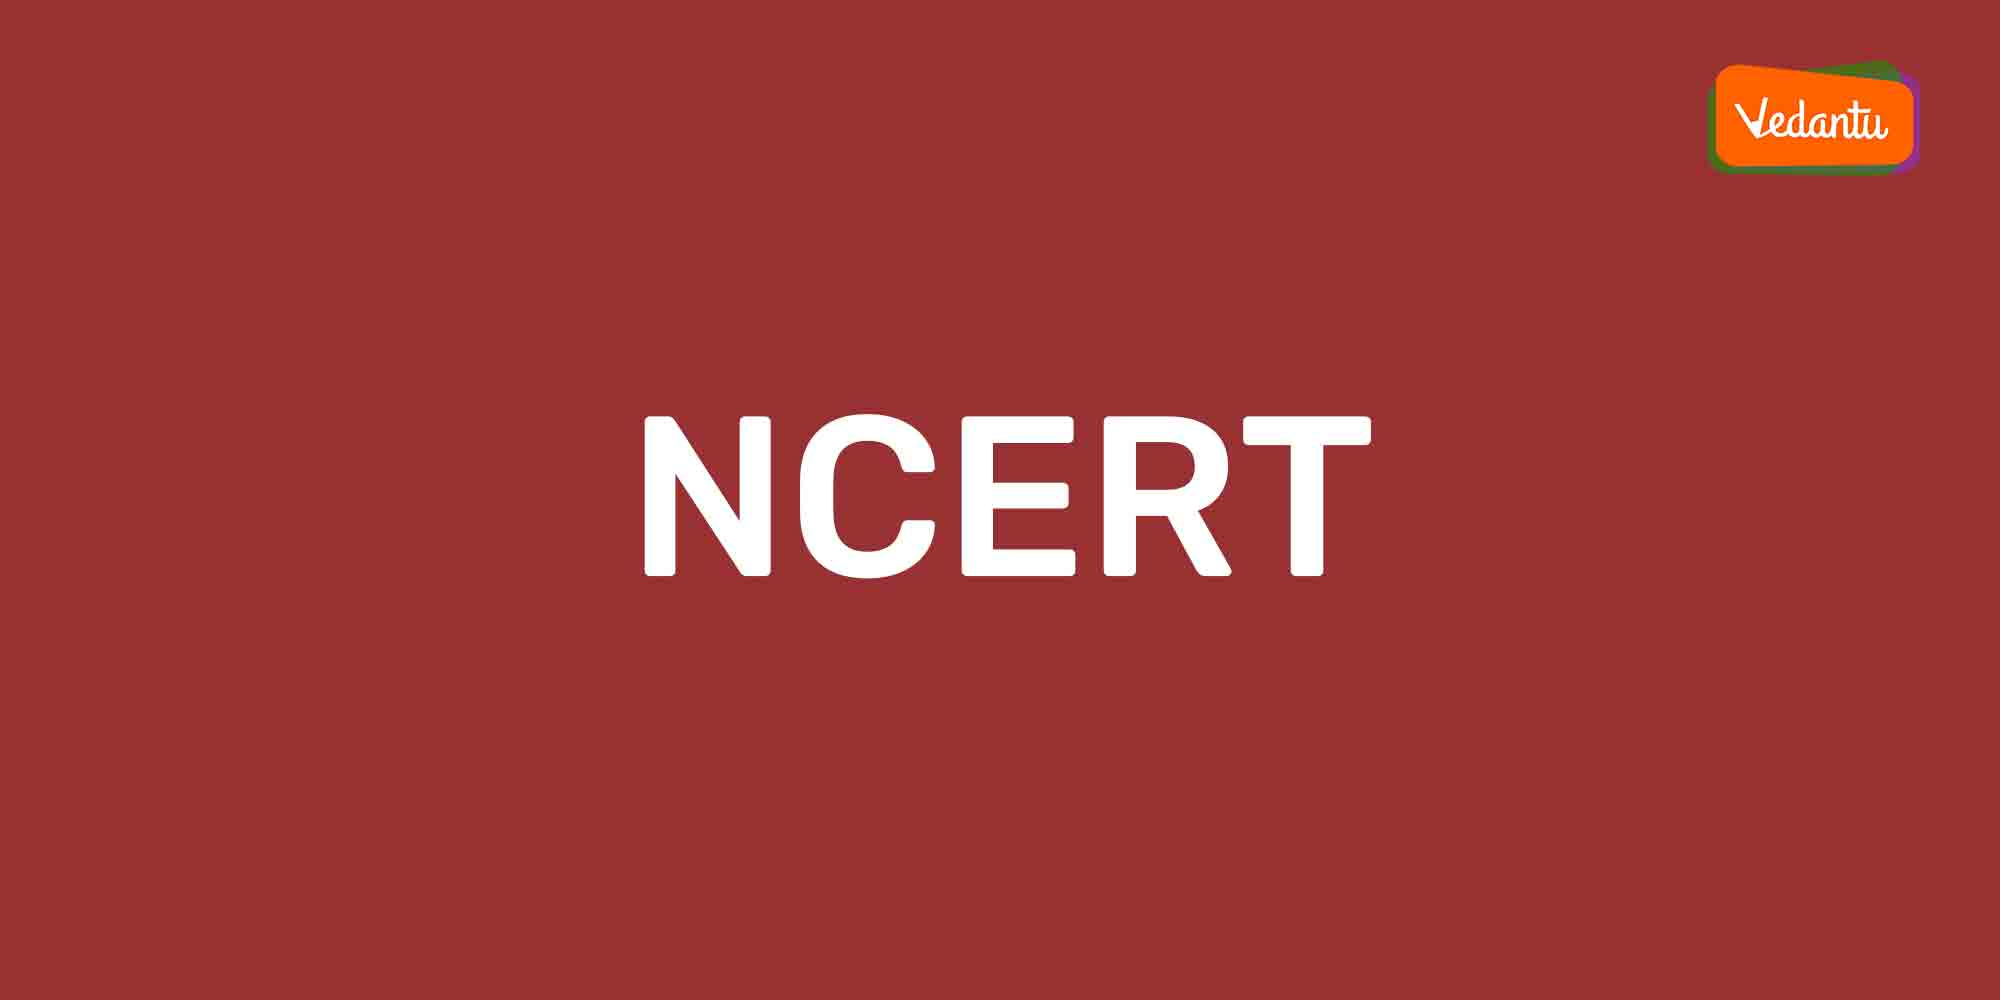 Ways to Use the NCERT Biology Book for NEET Preparations